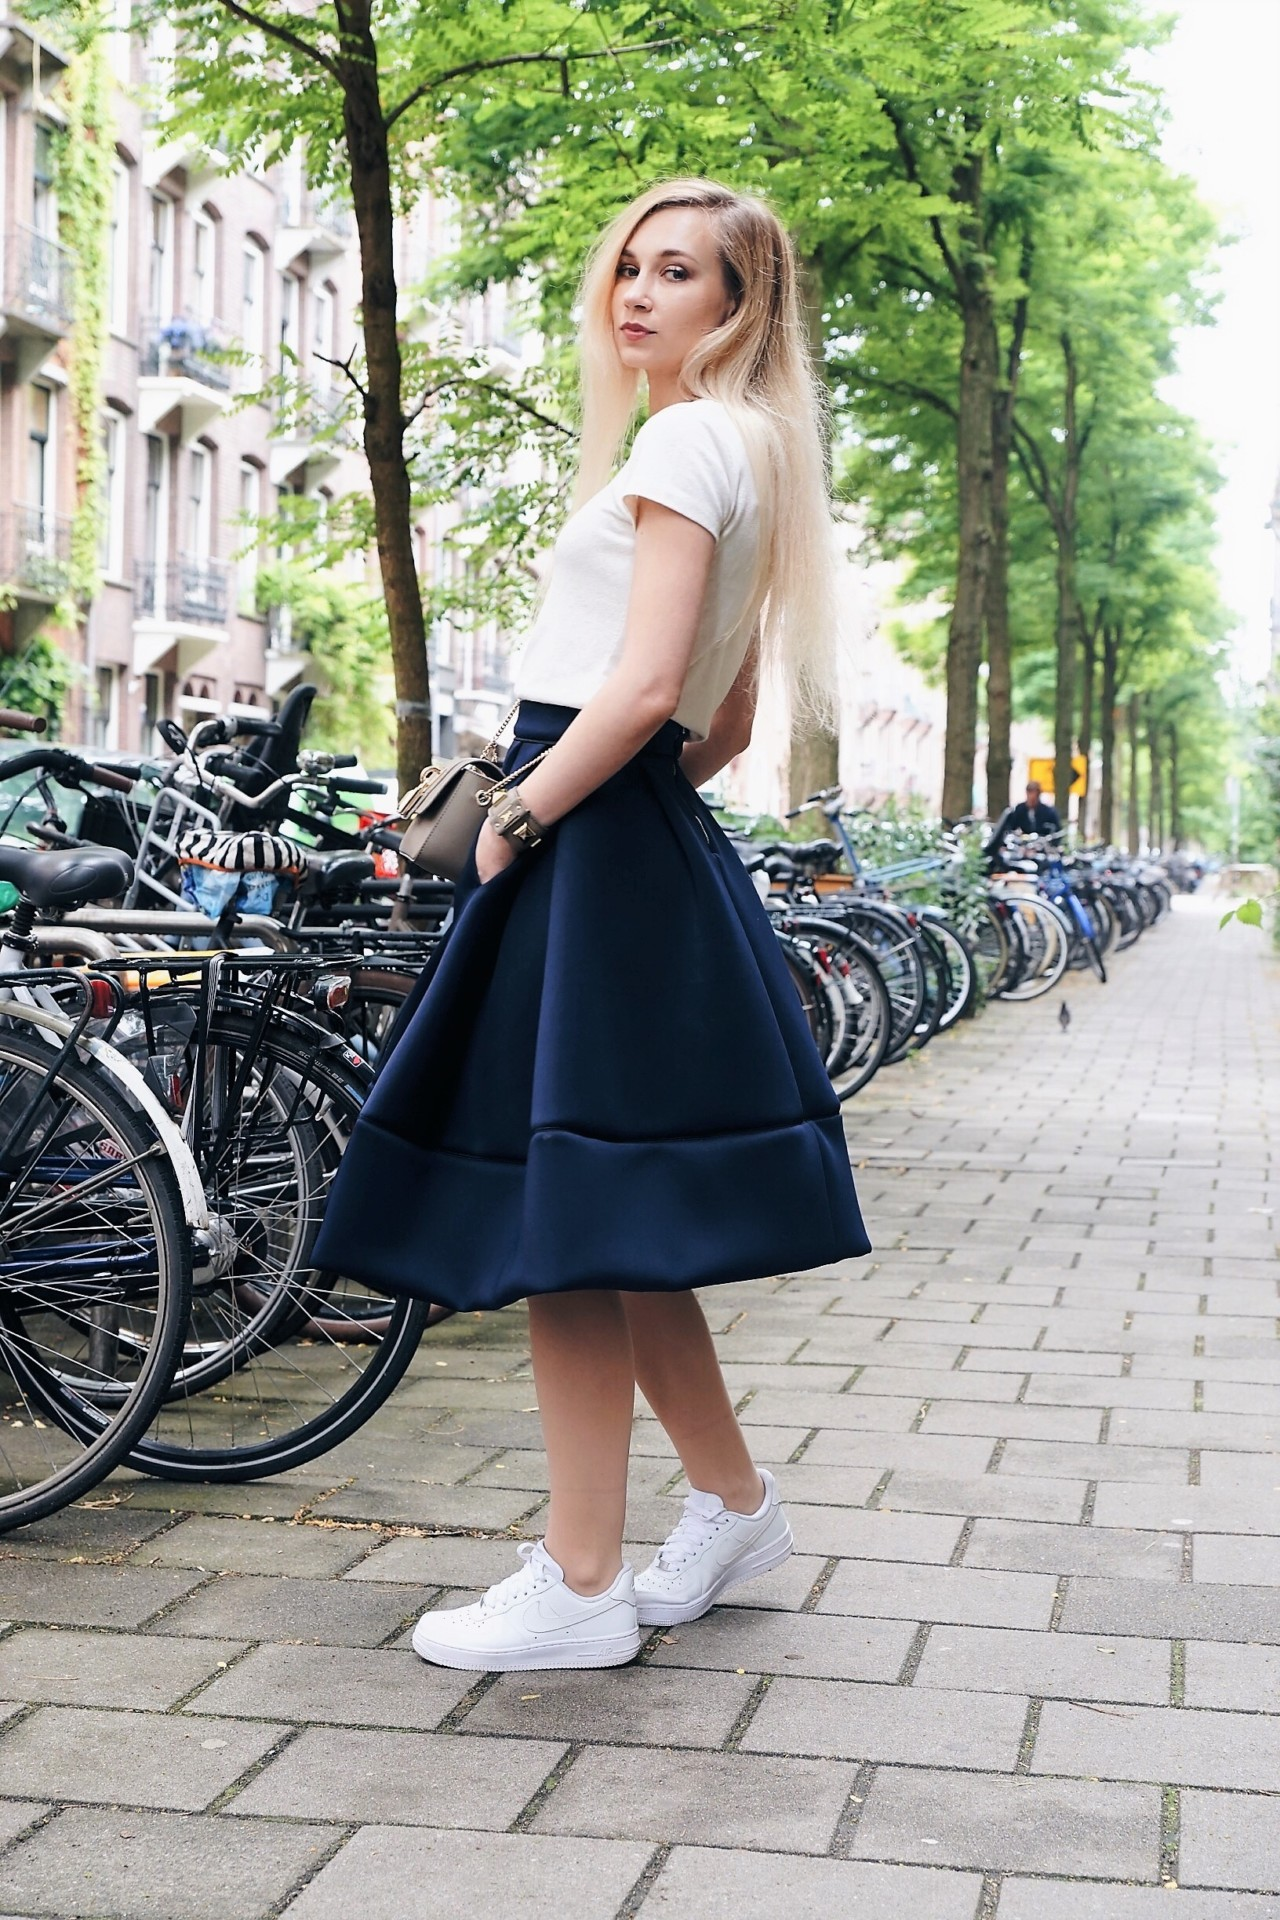 street-style_fashion_maje_dbkstylez_bestblog_fashion2017_мода_стиль_фэшн_amsterdam